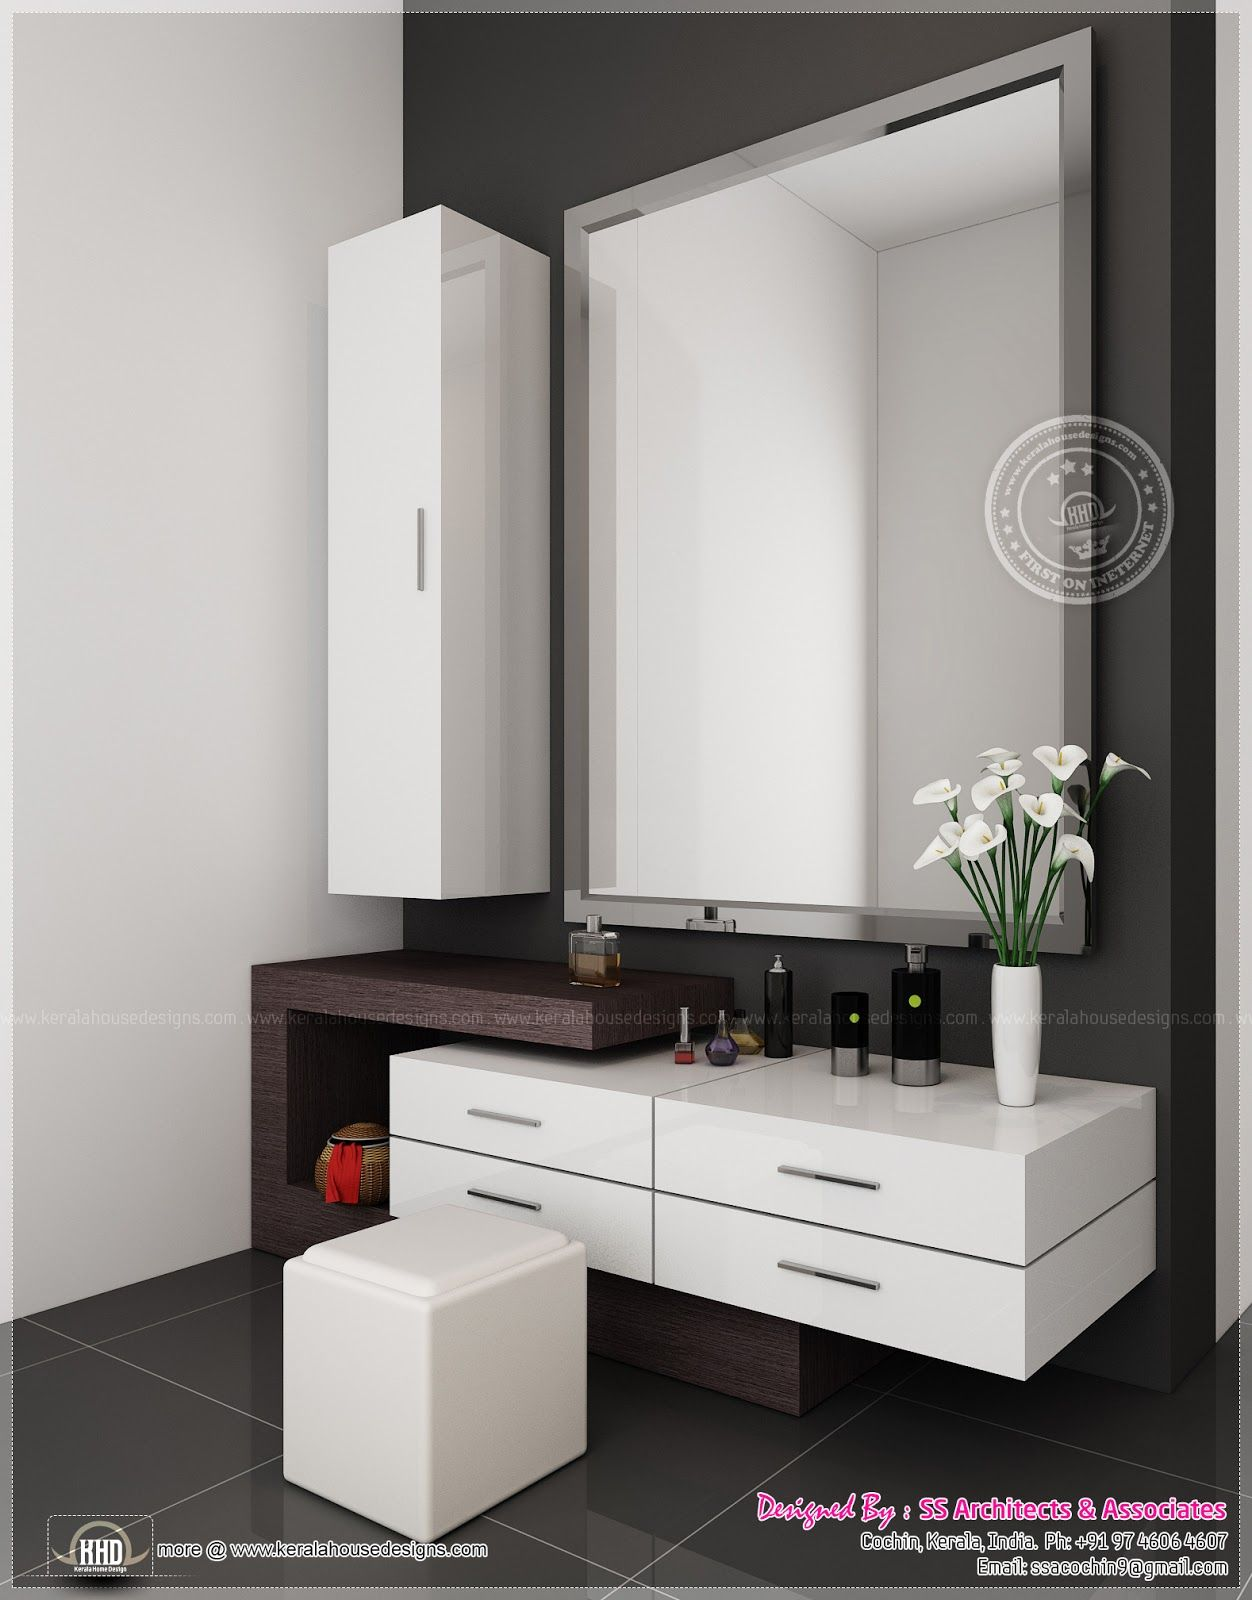 Wall mounted dressing table designs for bedroom - Cool Dressing Table Design Designs Small For Bedroom With Almirah Simple Full Length Mirror In Wood